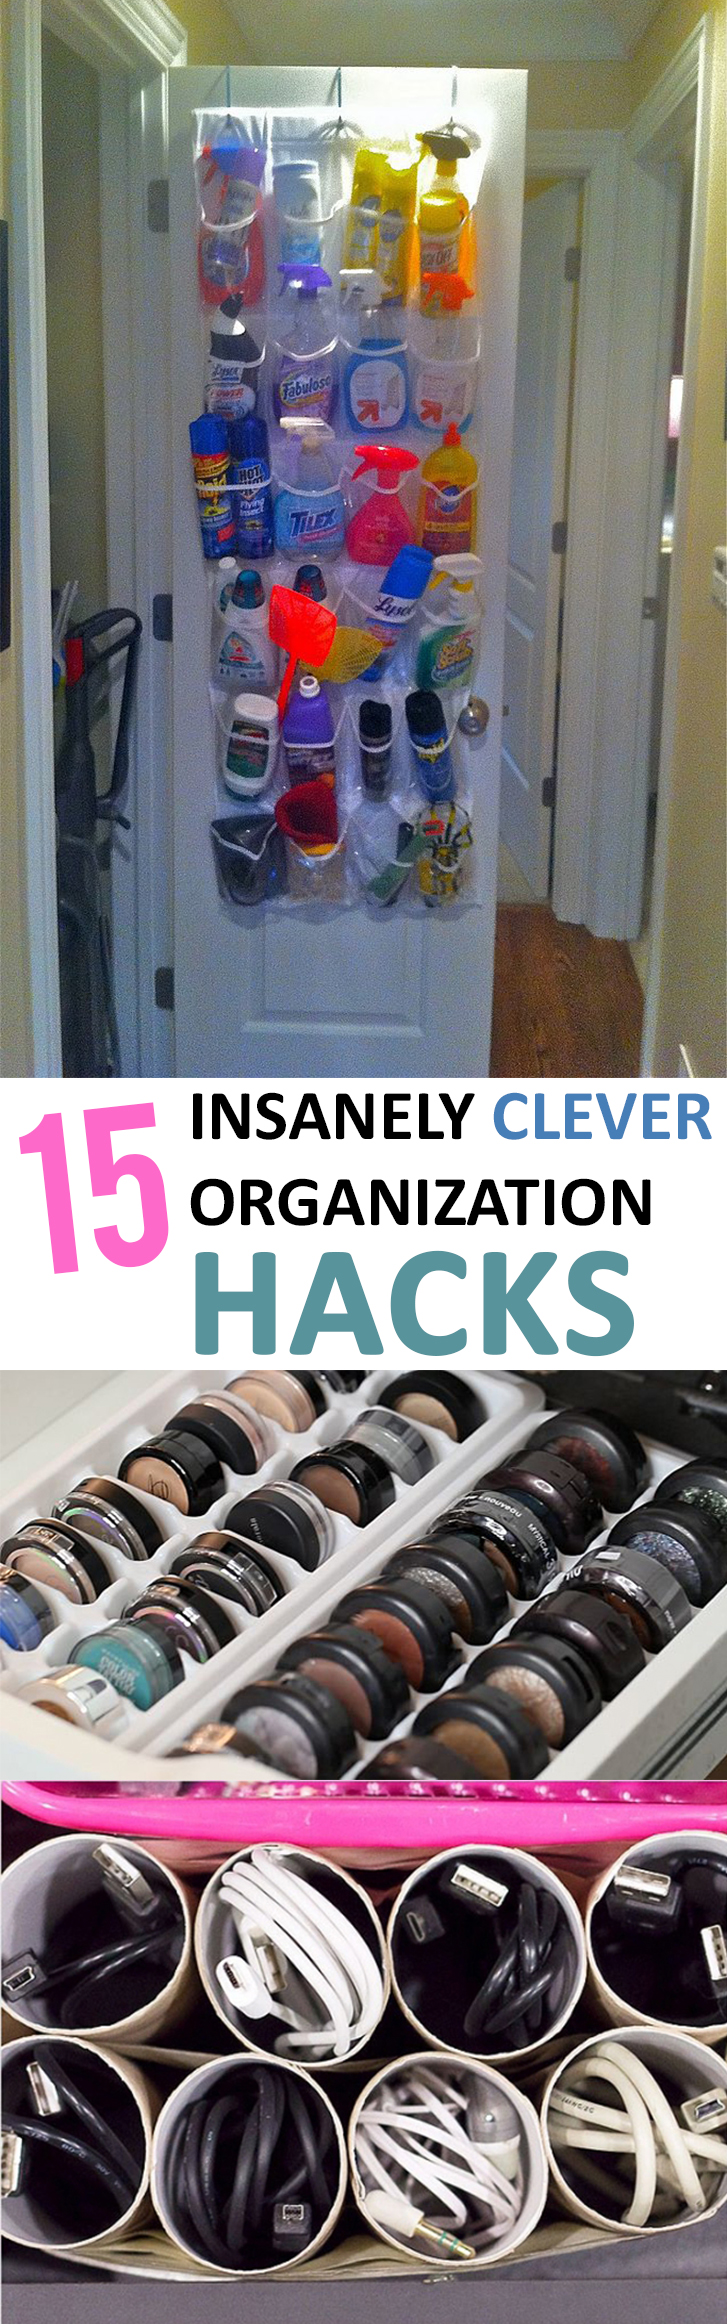 15 Insanely Clever Organization Hacks